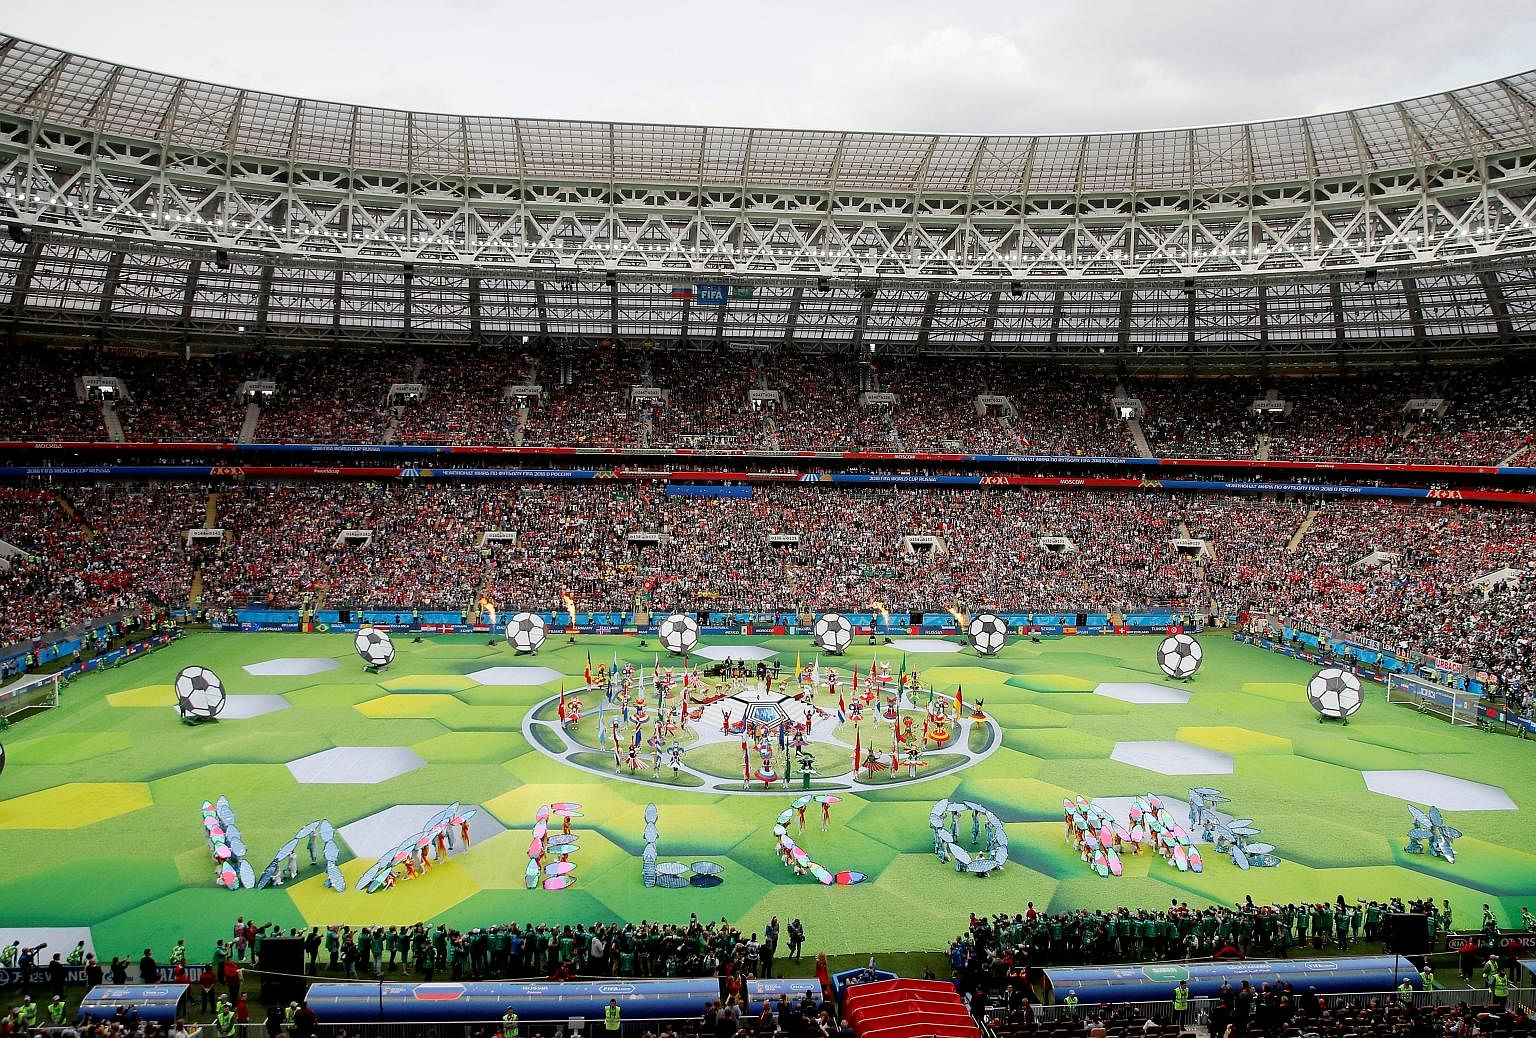 The opening ceremony of the Fifa World Cup was held at Moscow's Luzhniki Stadium yesterday. The tournament was declared open by Russian President Vladimir Putin.